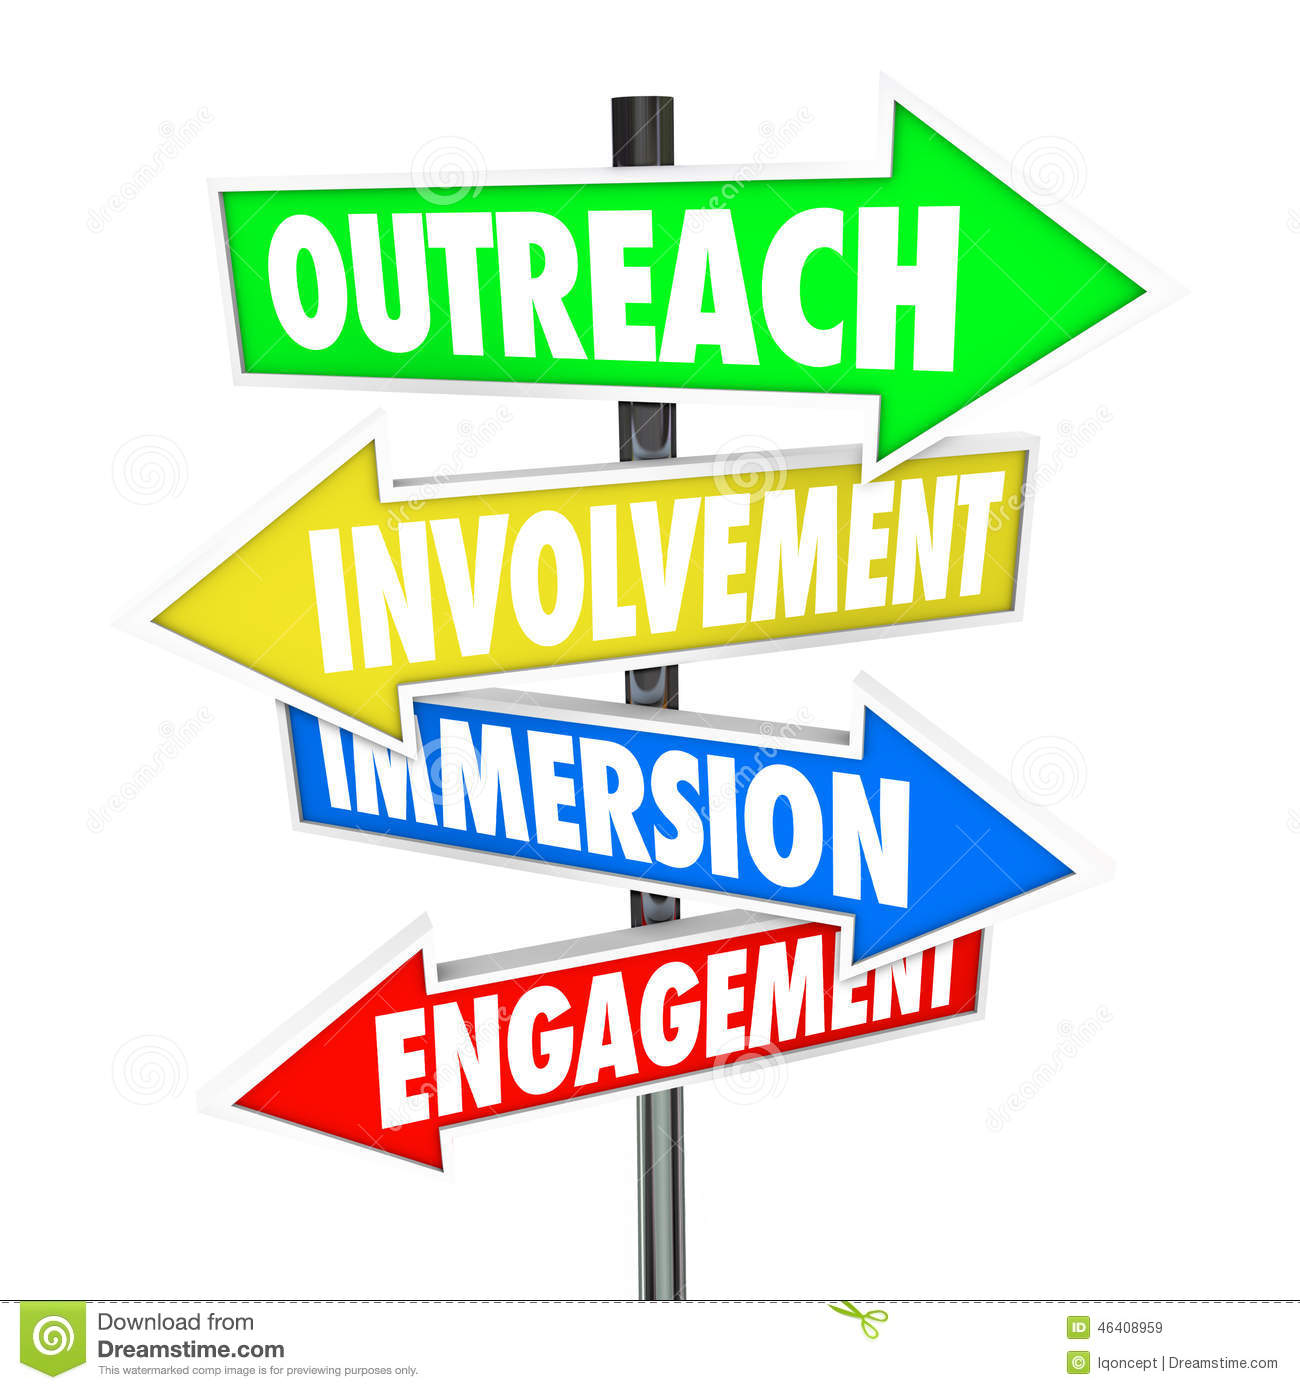 Outreach Involvement Immersion Engagement Participation Signs Stock Illustration Image 46408959